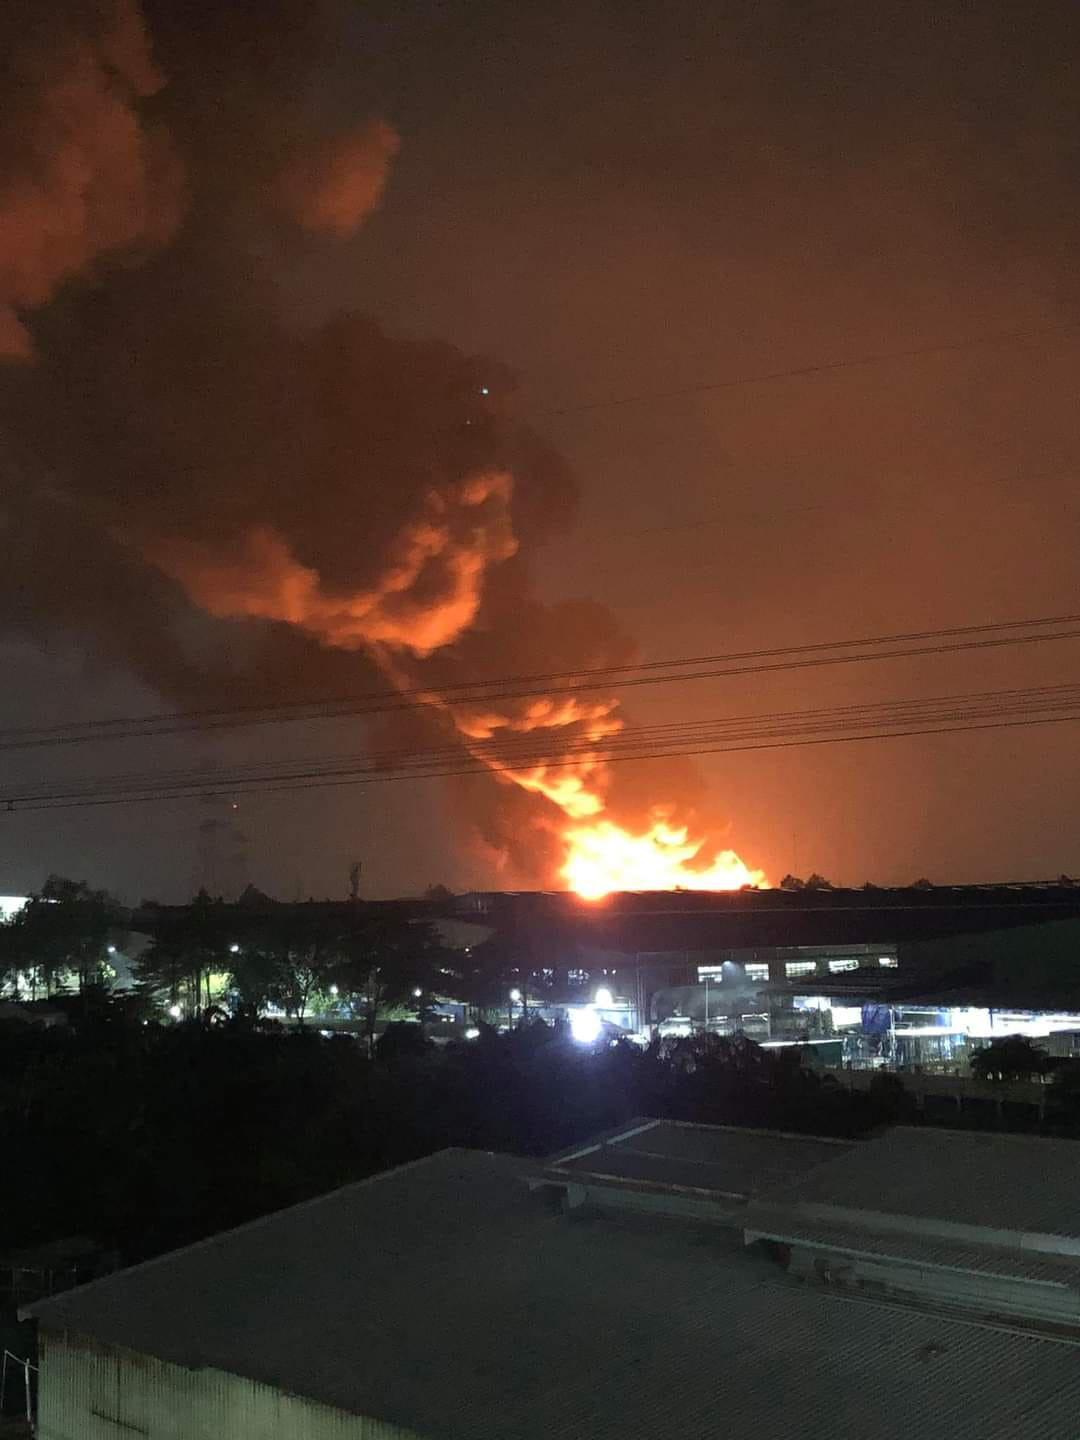 A massive plume of smoke rises from the burned warehouse at Tan Tao Industrial Park in Binh Tan District, Ho Chi Minh City, August 26, 2020. Photo: Minh Hoa / Tuoi Tre